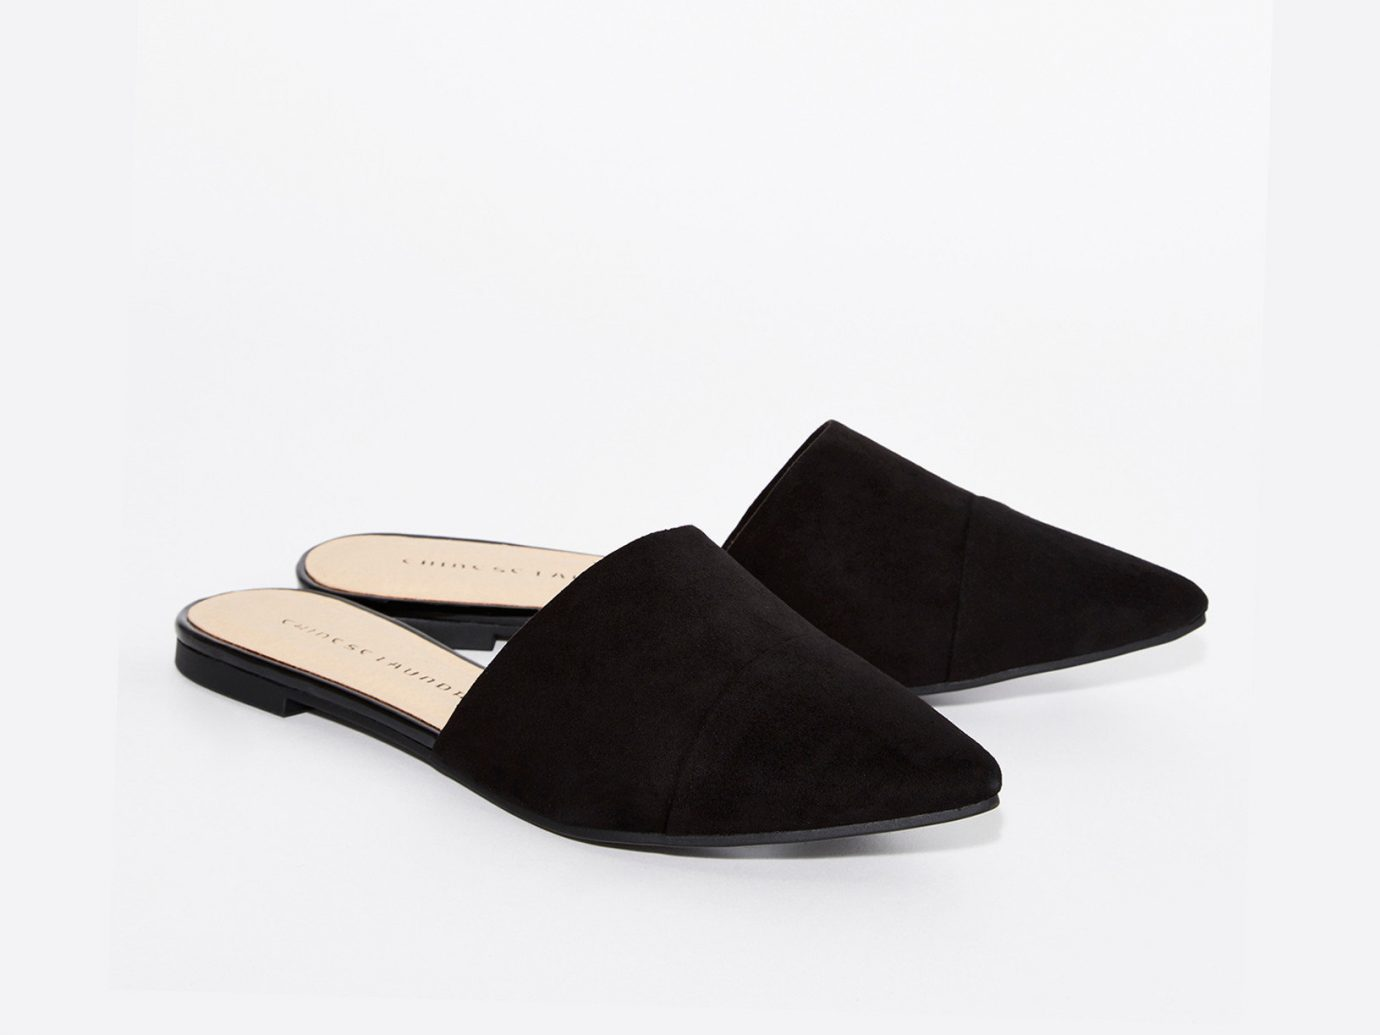 Style + Design footwear shoe leather slipper suede textile outdoor shoe human body material